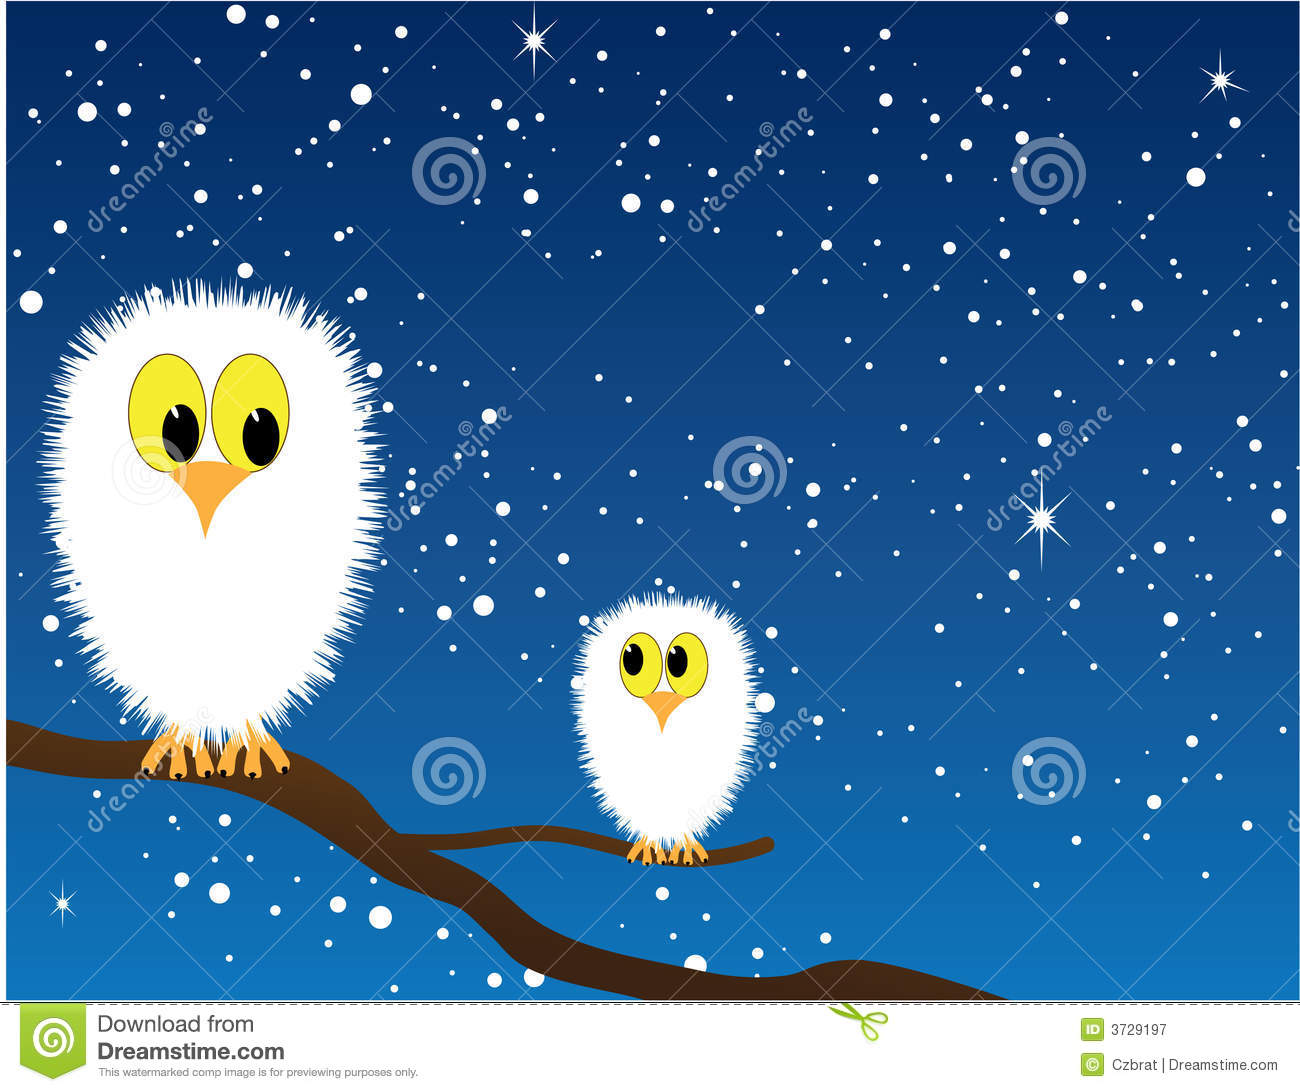 Free Download Of Christmas Wallpaper With Snow Falling Snowy Owls Stock Vector Image Of Cartoon Birds Branch